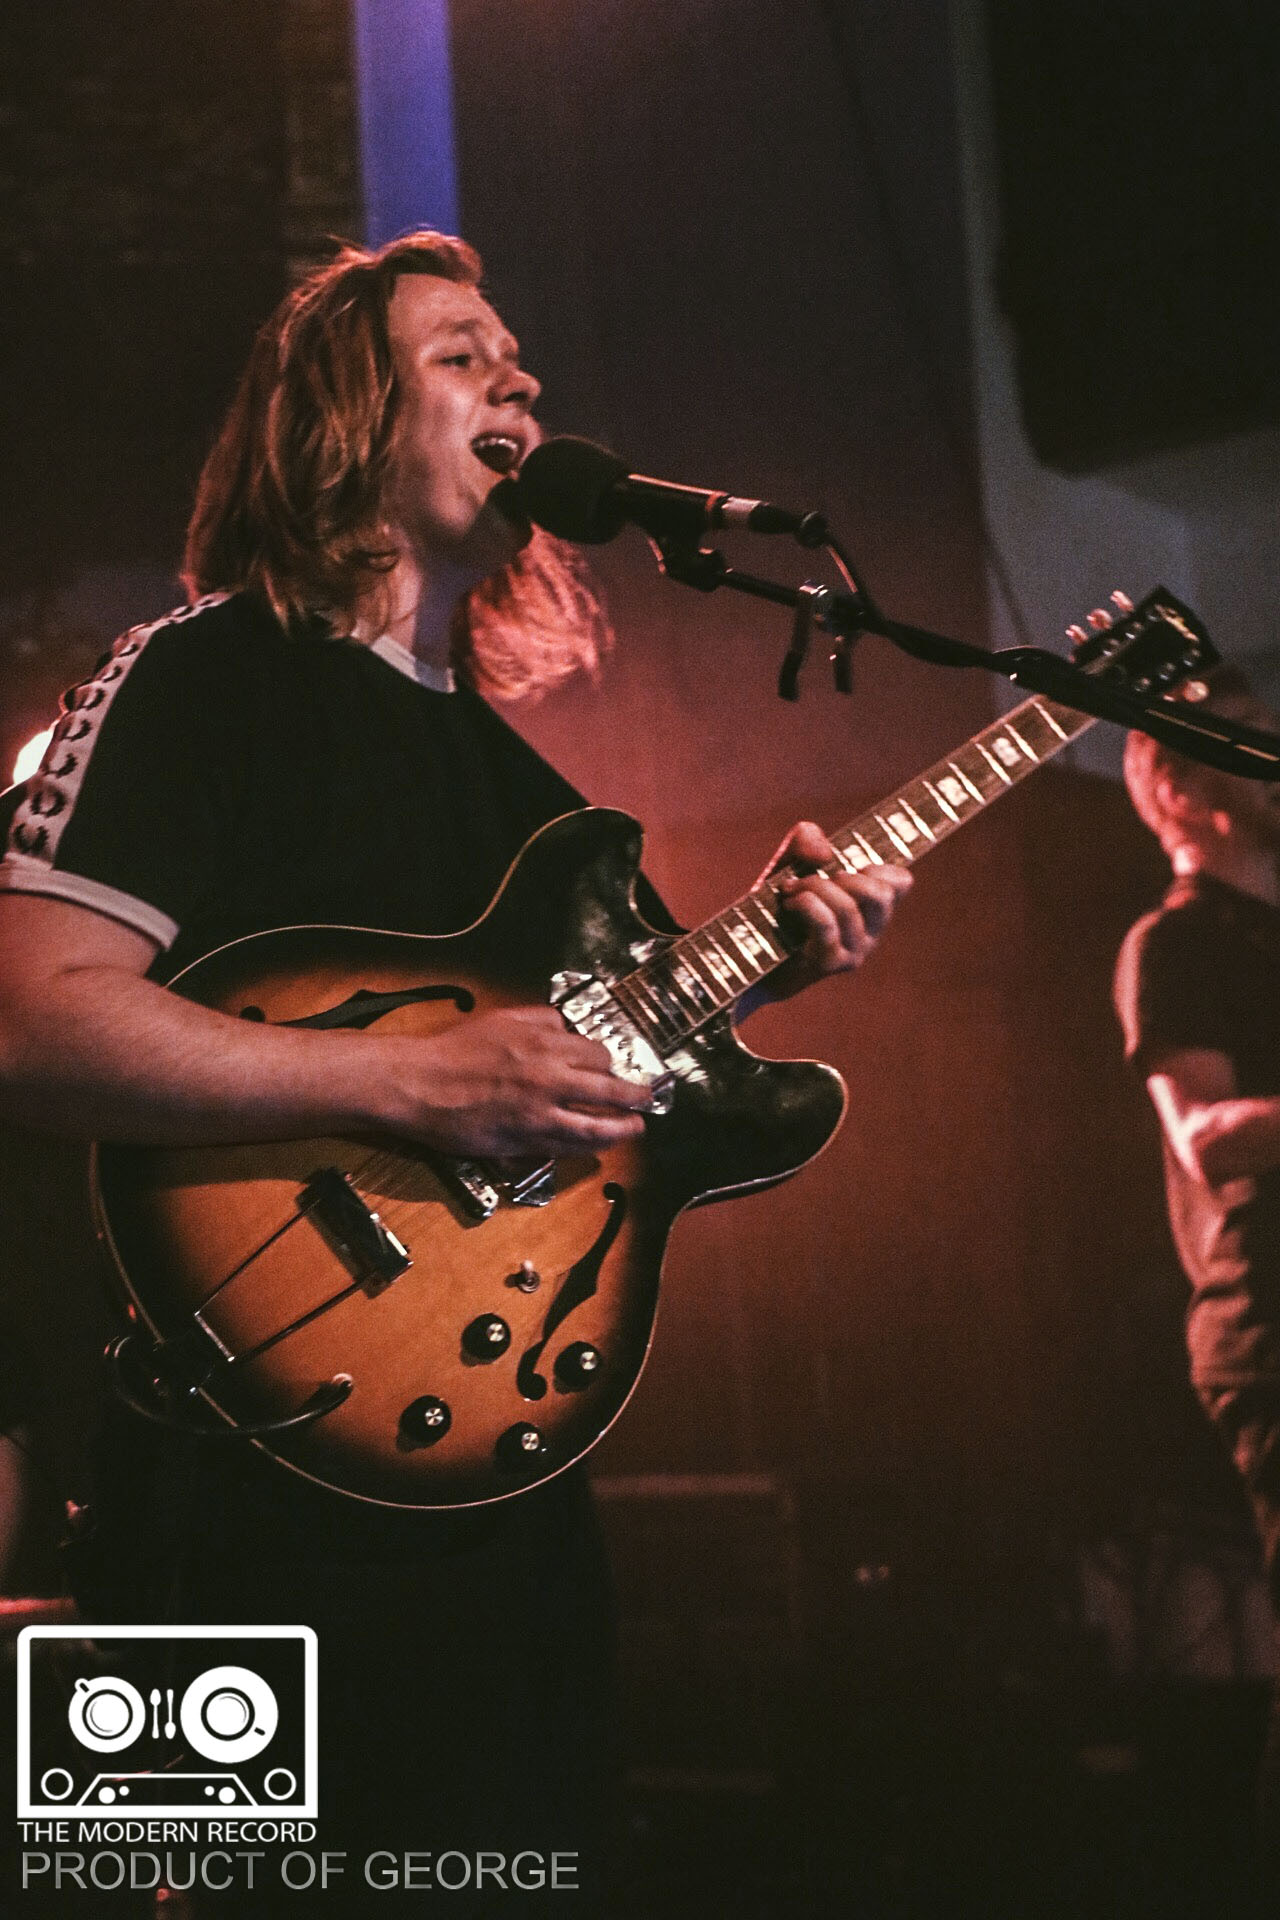 LEWIS CAPALDI PERFORMING A SOLD OUT HOMECROWD SHOW AT GLASGOW'S ST LUKE'S - 15/09/2017  PICTURE BY: PRODUCT OF GEORGE PHOTOGRAPHY